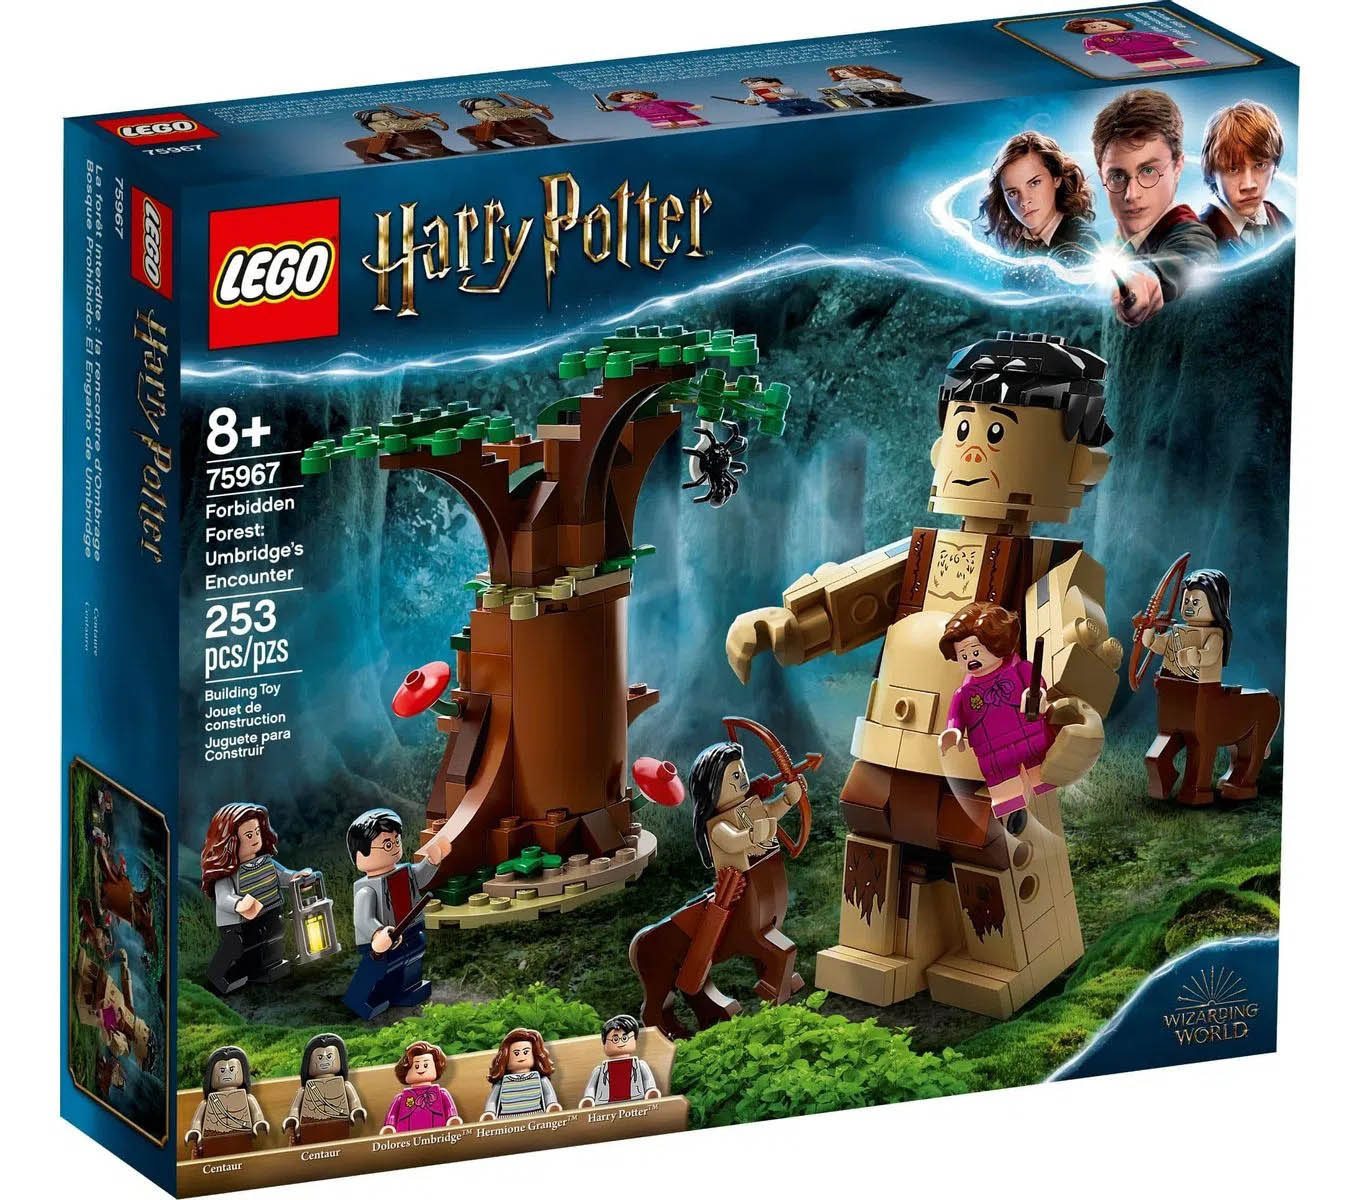 LEGO Harry Potter A Floresta Proibida: O Encontro de Grope e Umbridge 75967